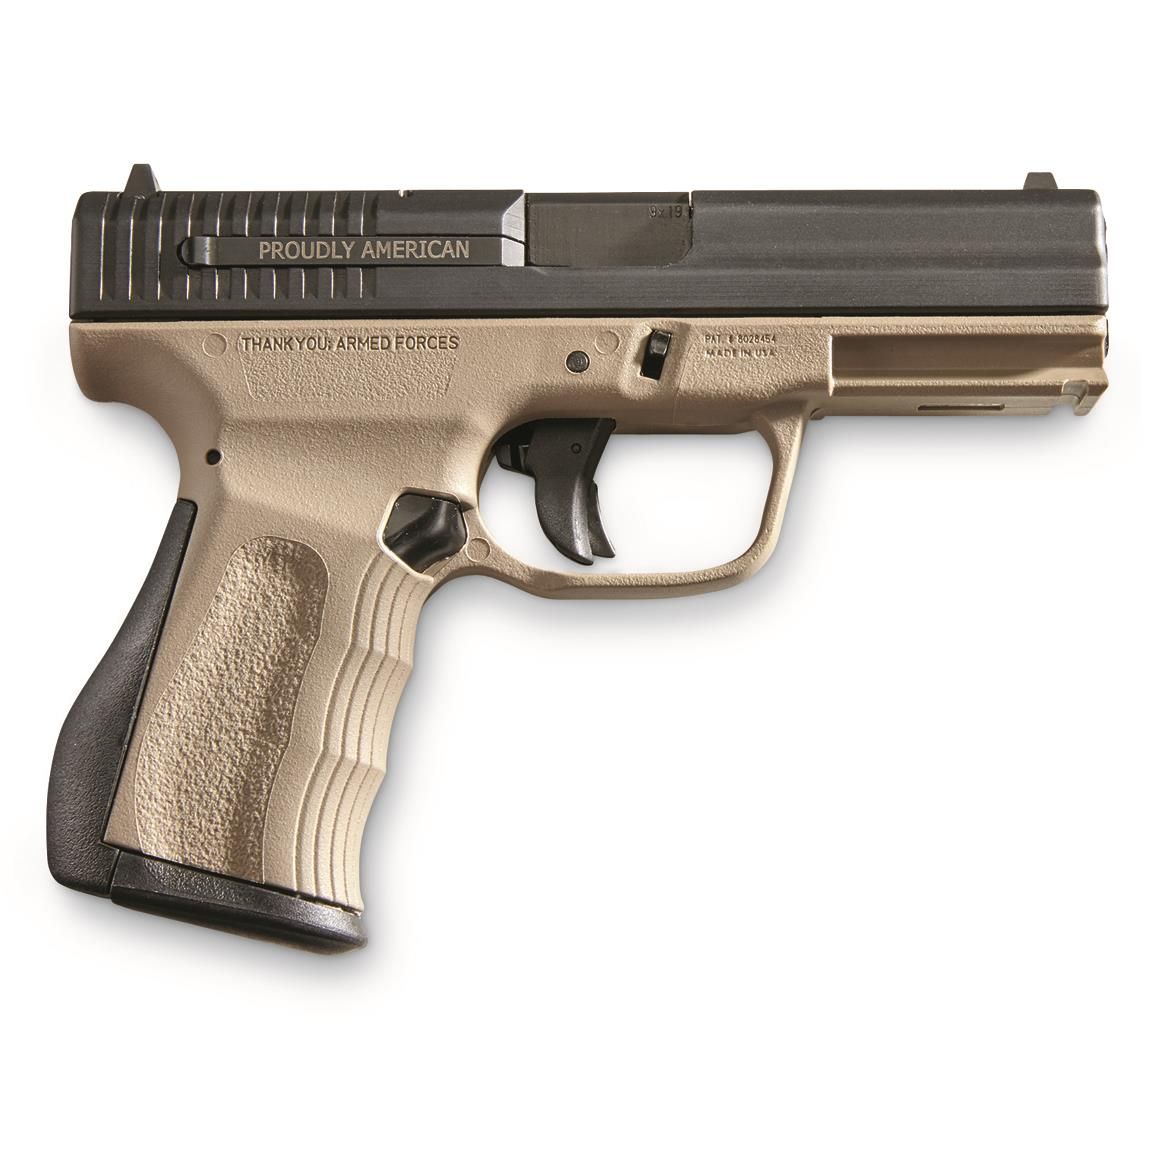 "FMK Firearms 9C1 G2 Compact FAT, Semi-Automatic, 9mm, 4"" Barrel, Dark Earth, 14+1 Rounds"